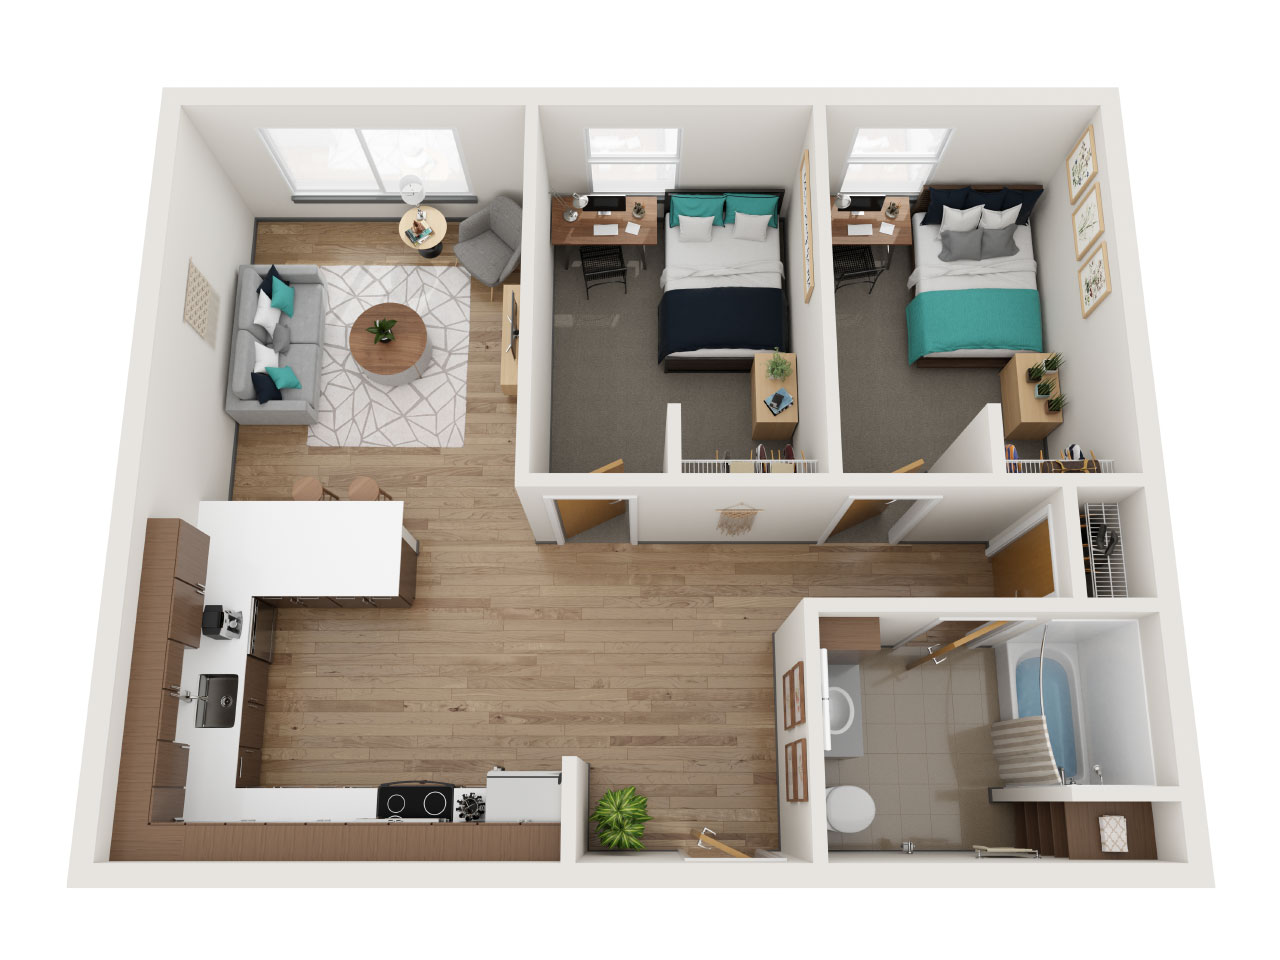 Aerial View of a Floor Plan for a 2 Bedroom Apartment at Stateside